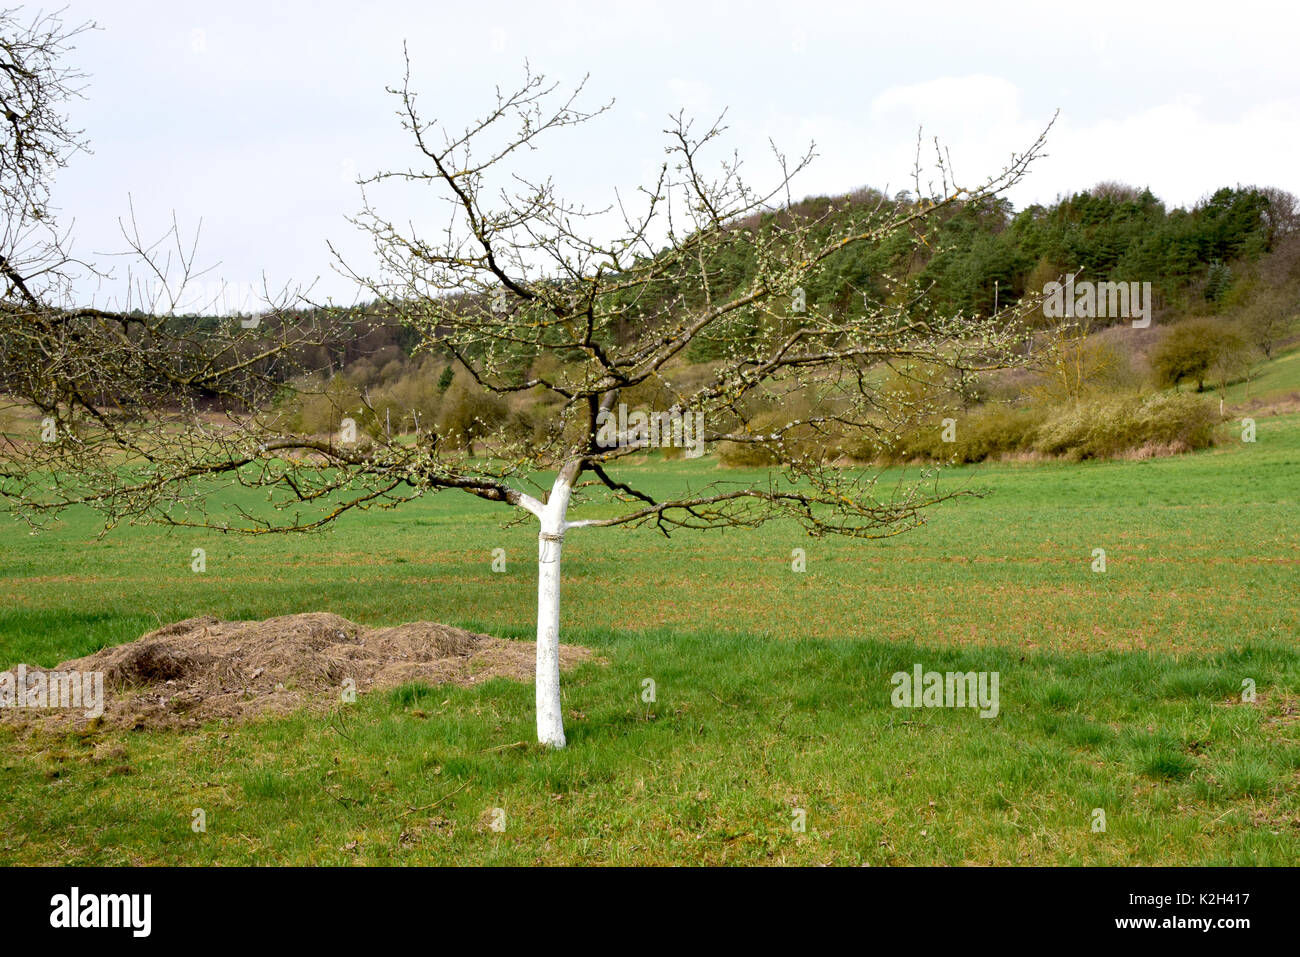 Whitewashed fruit tree stems, protection against frost - Stock Image